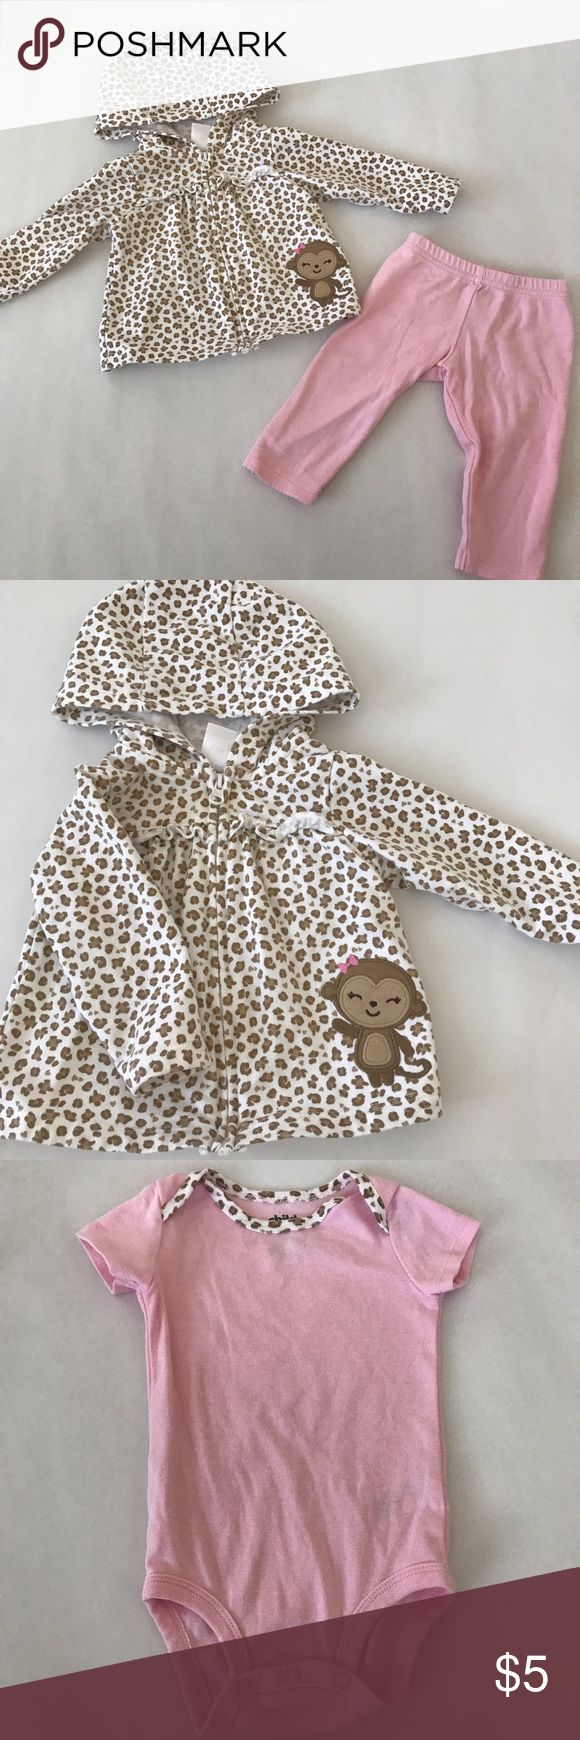 Carter's 3 Piece Set Ones with: Animal print zip-up hoodie, pants, and matching bodysuit (animal Print trimming on the collar) Carter's Matching Sets